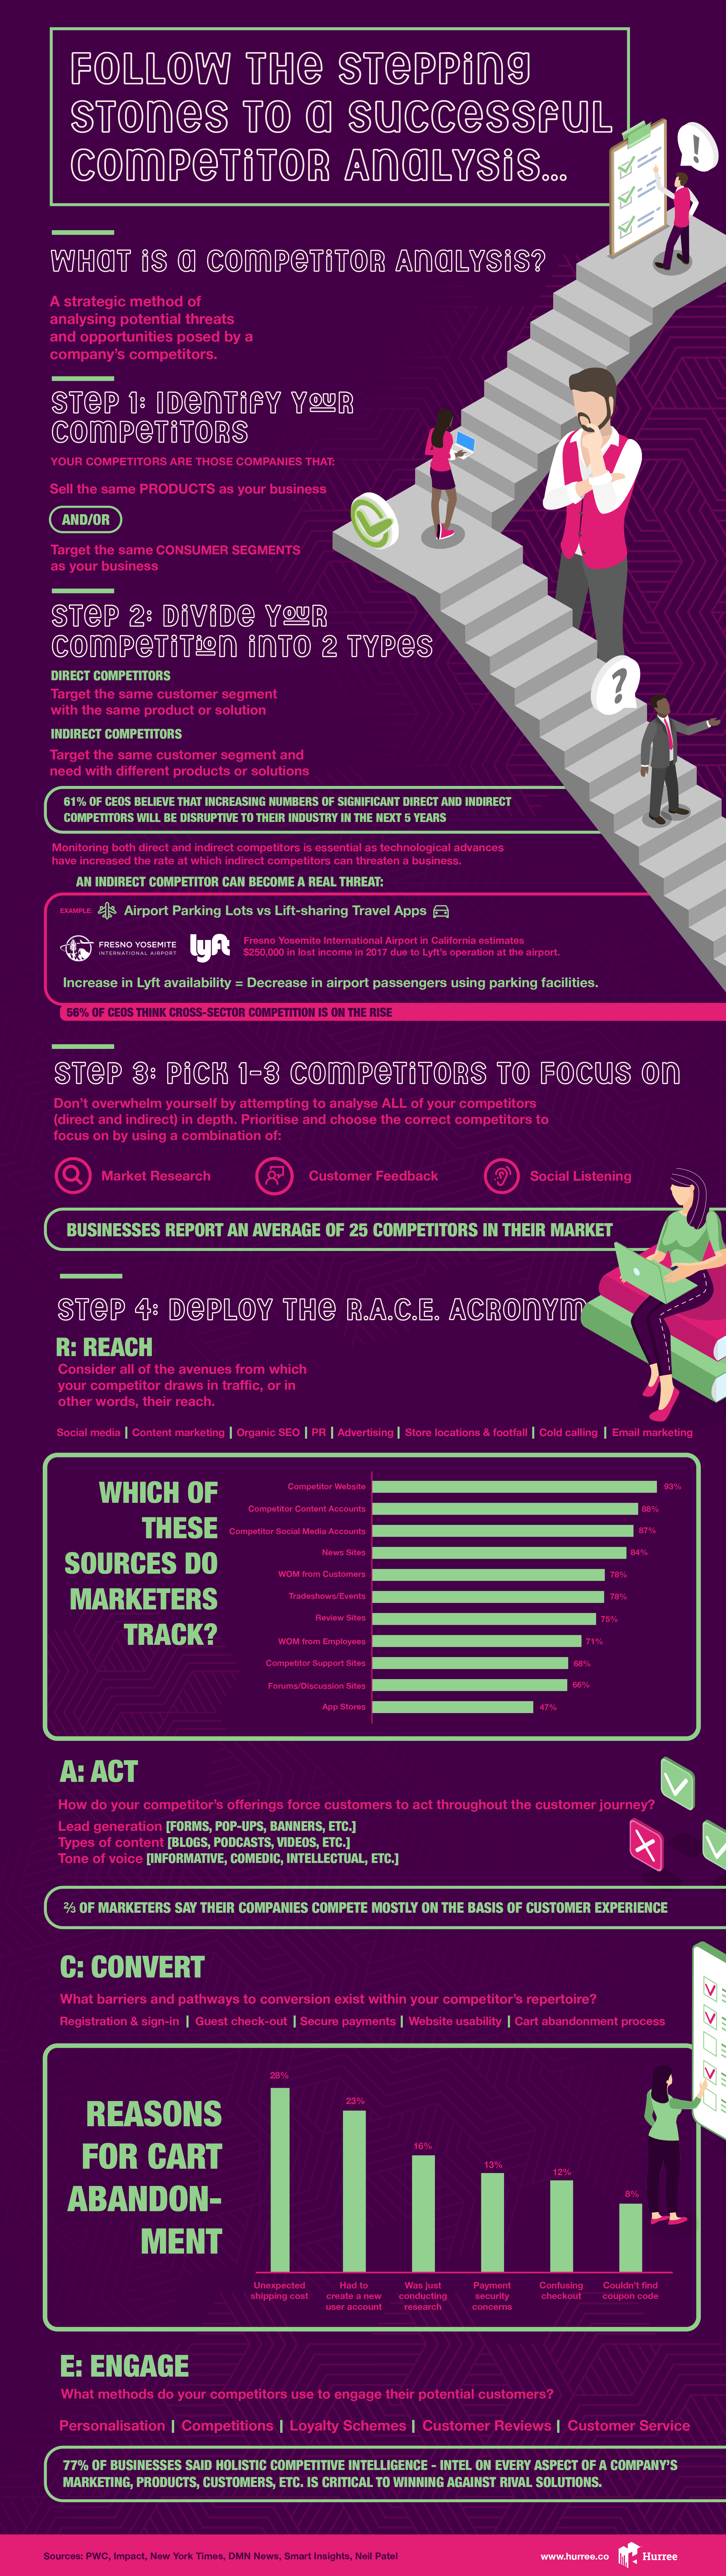 Infographic: Follow the Stepping Stones to A Successful Competitor Analysis